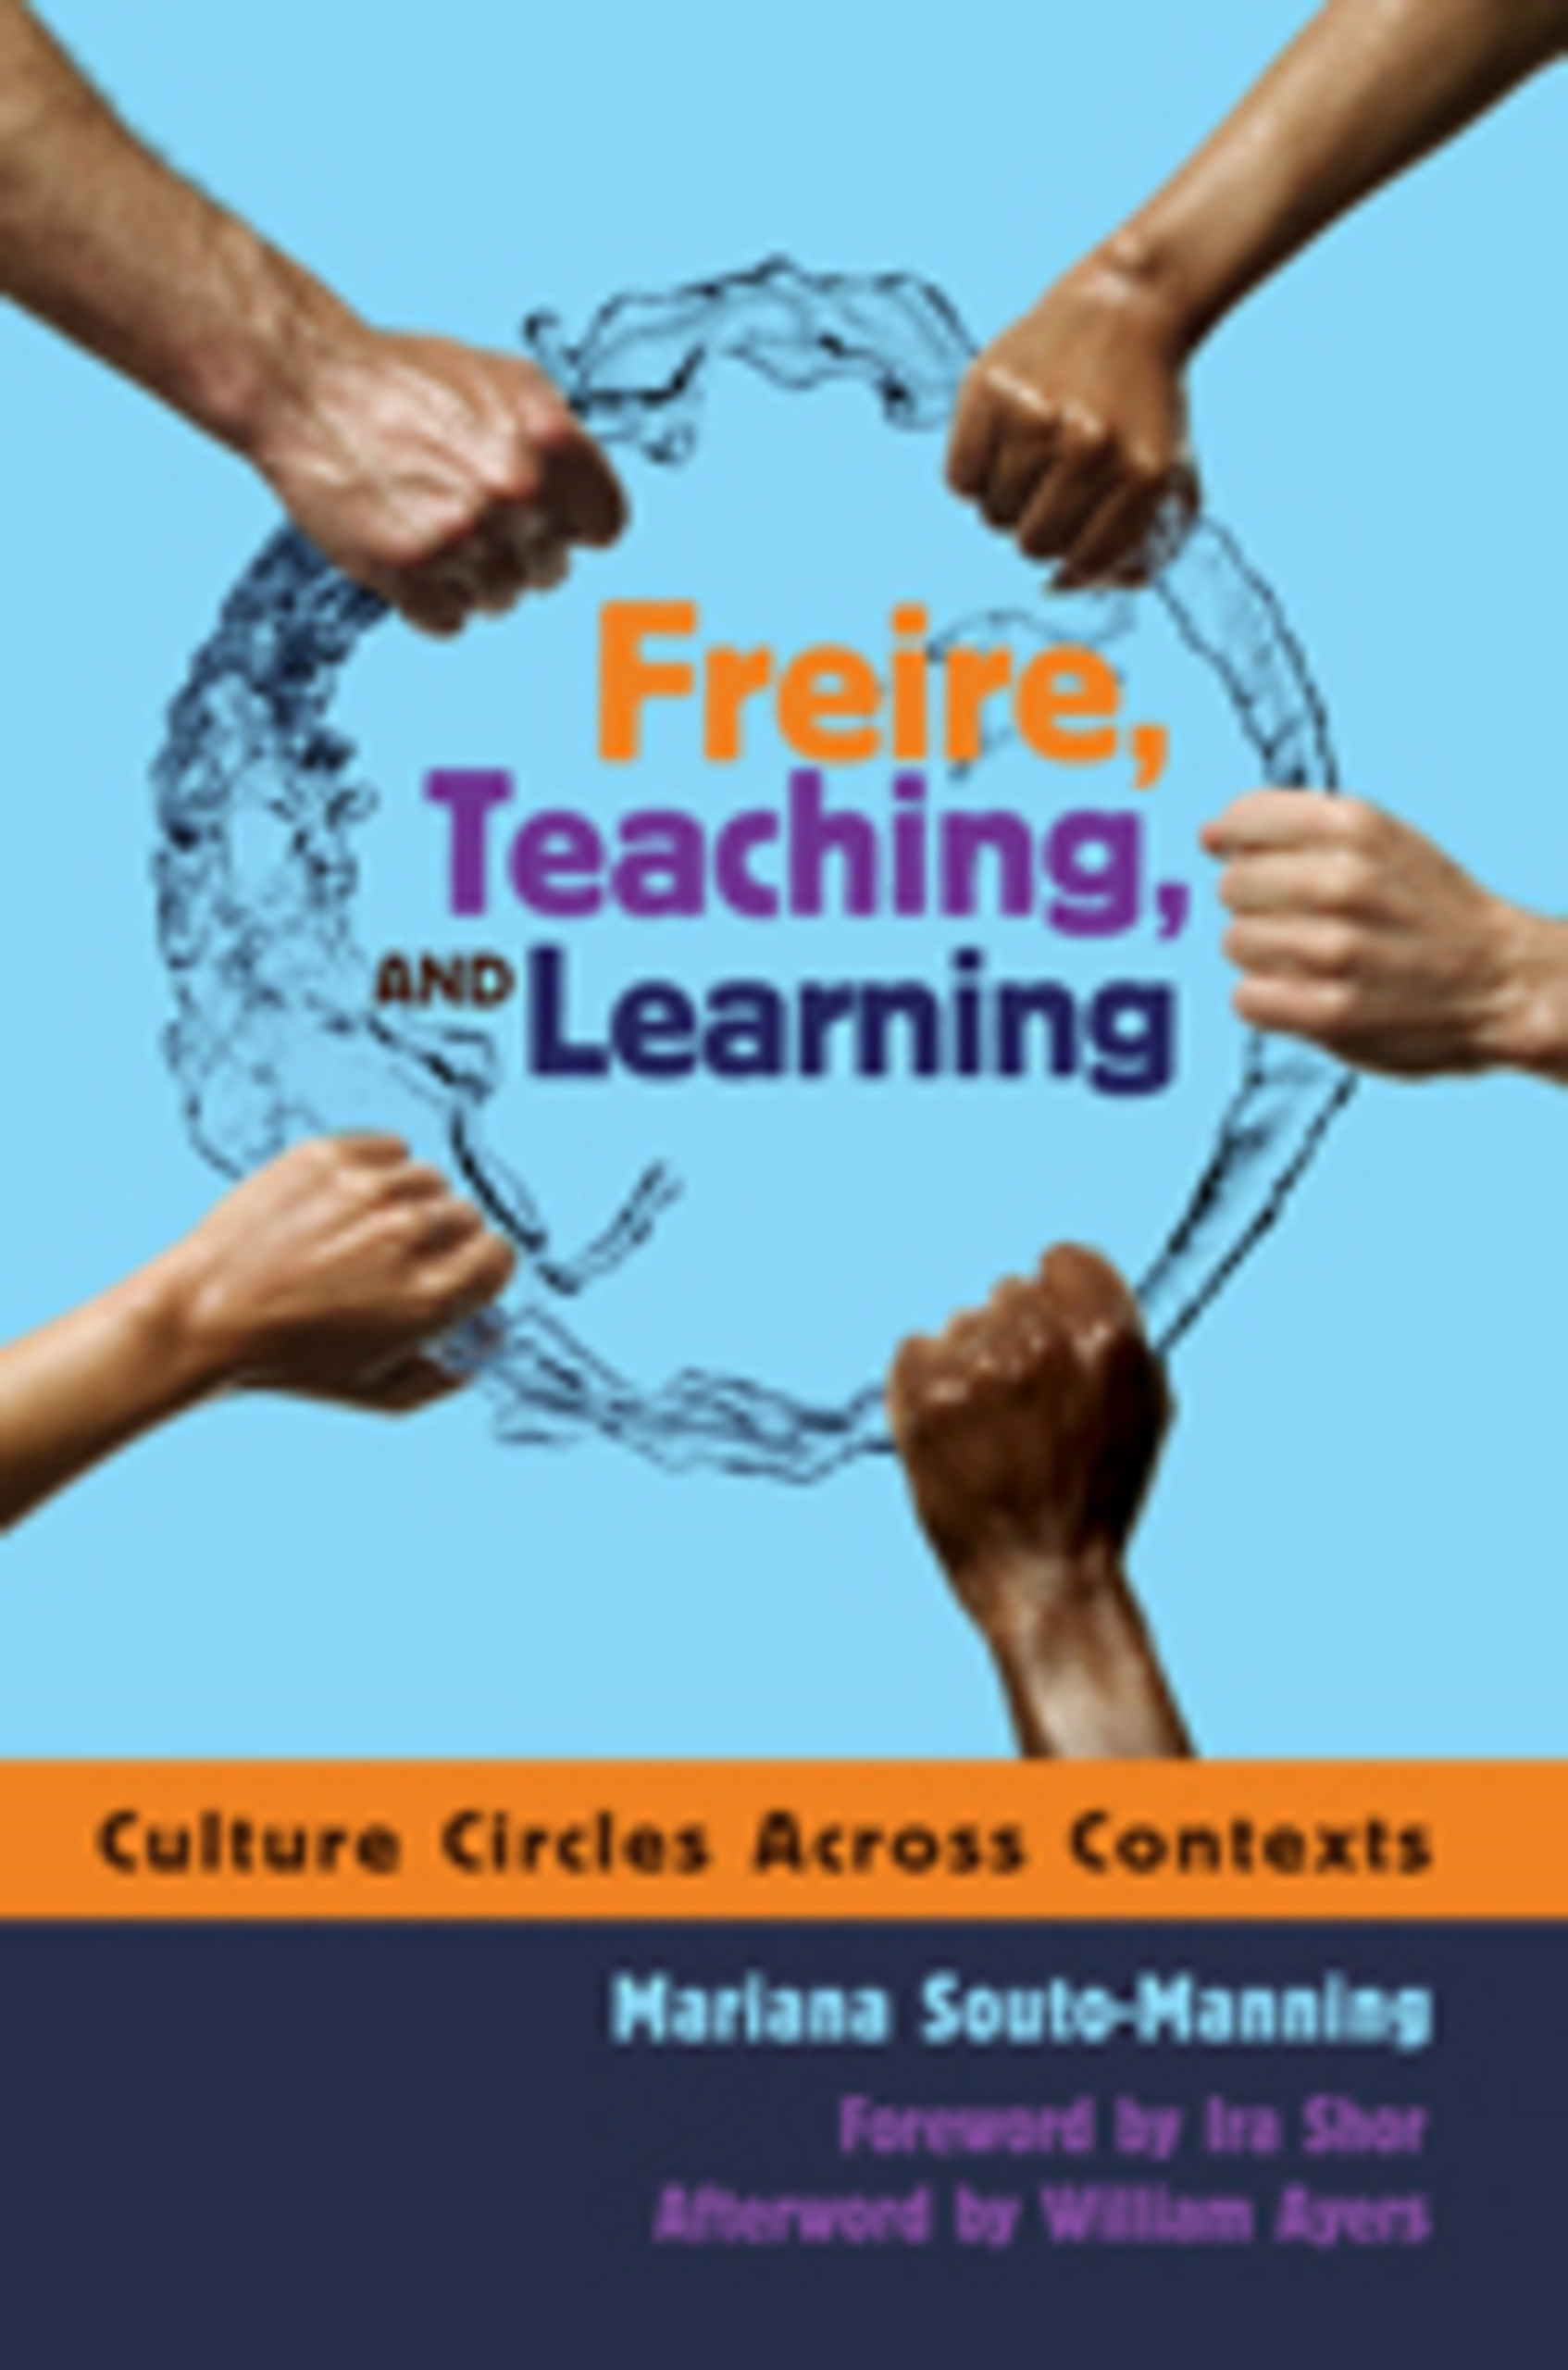 Title: Freire, Teaching, and Learning